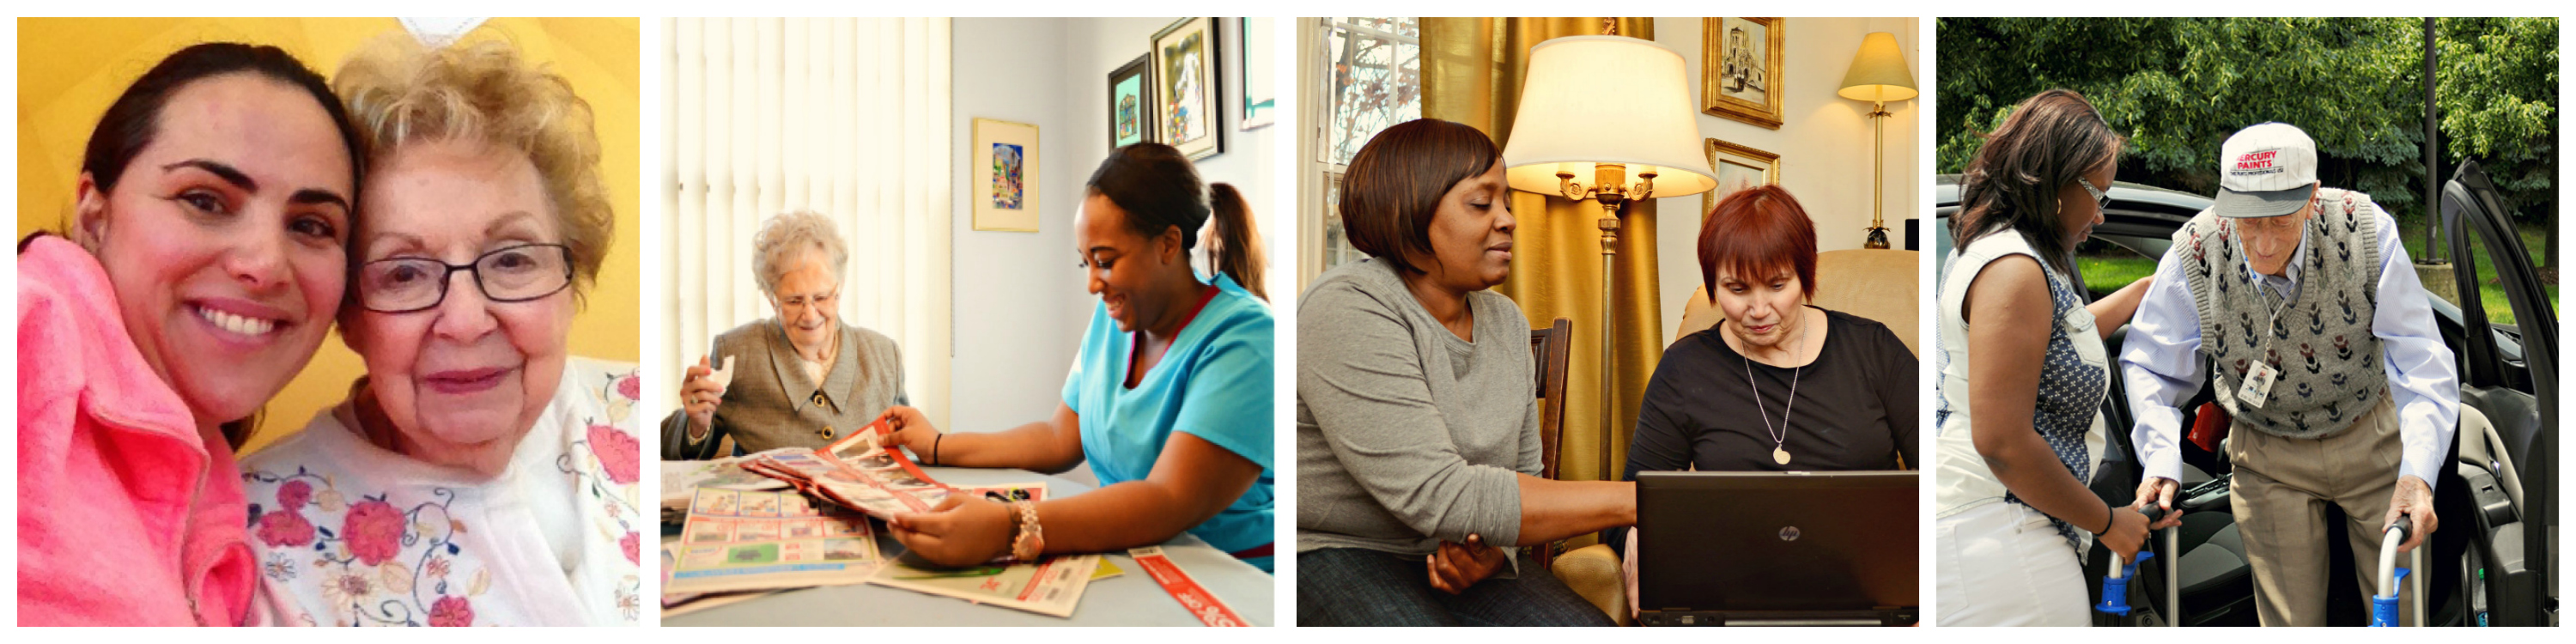 Marisa caregivers at work with clients